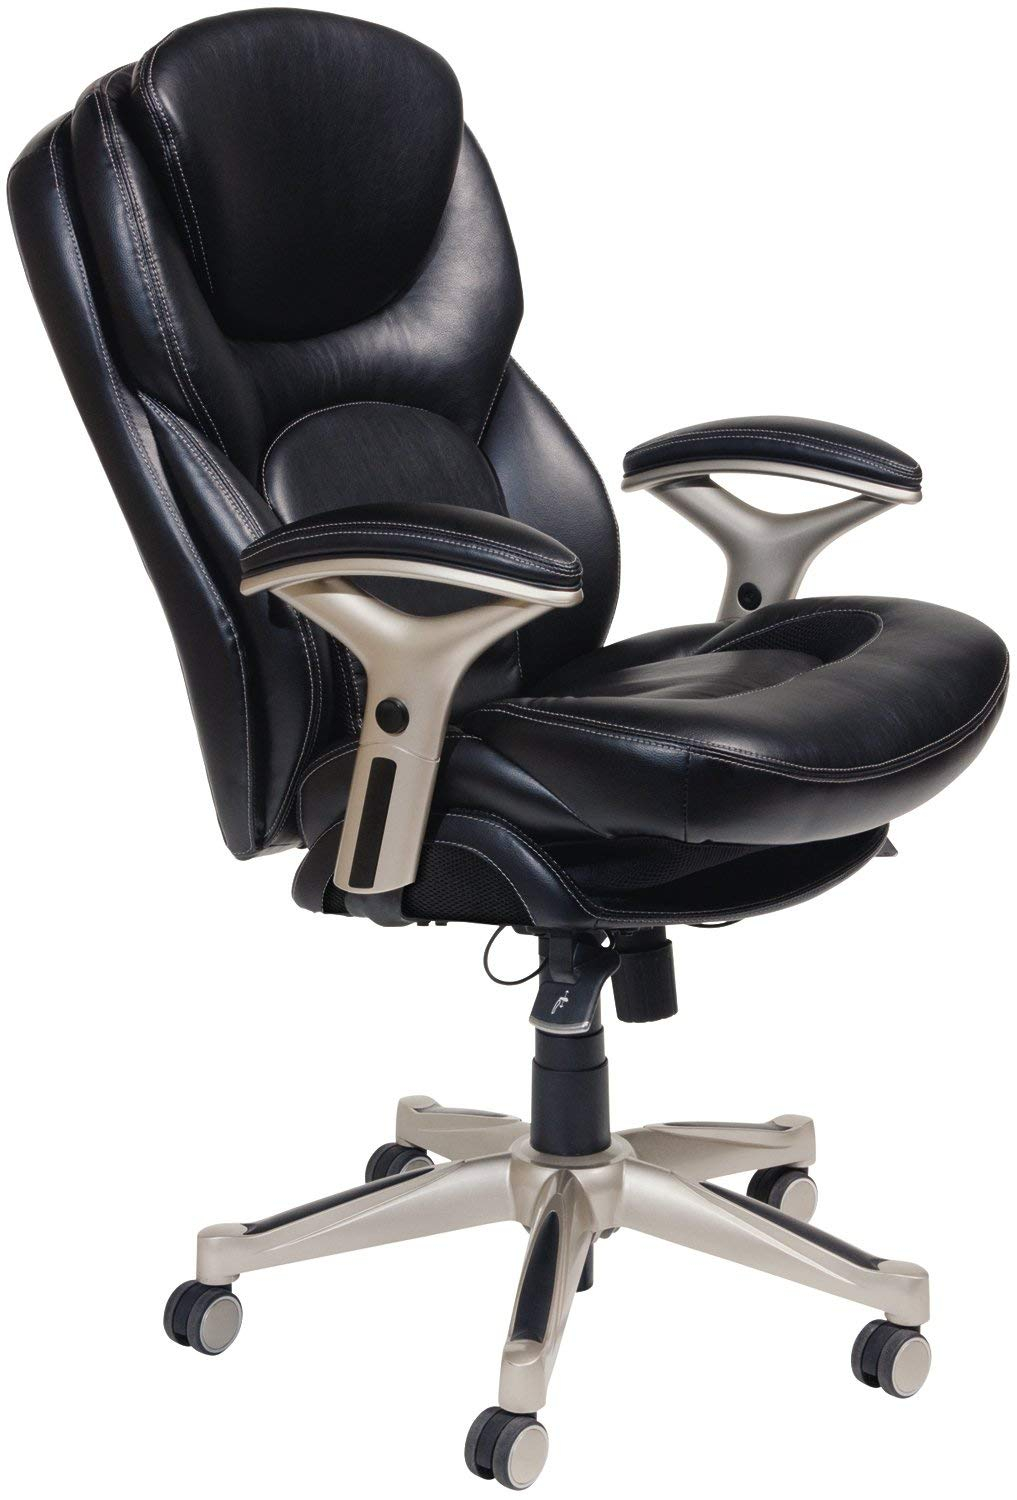 Best Computer Chairs For Long Hours Exercises To Offset pertaining to sizing 1017 X 1500